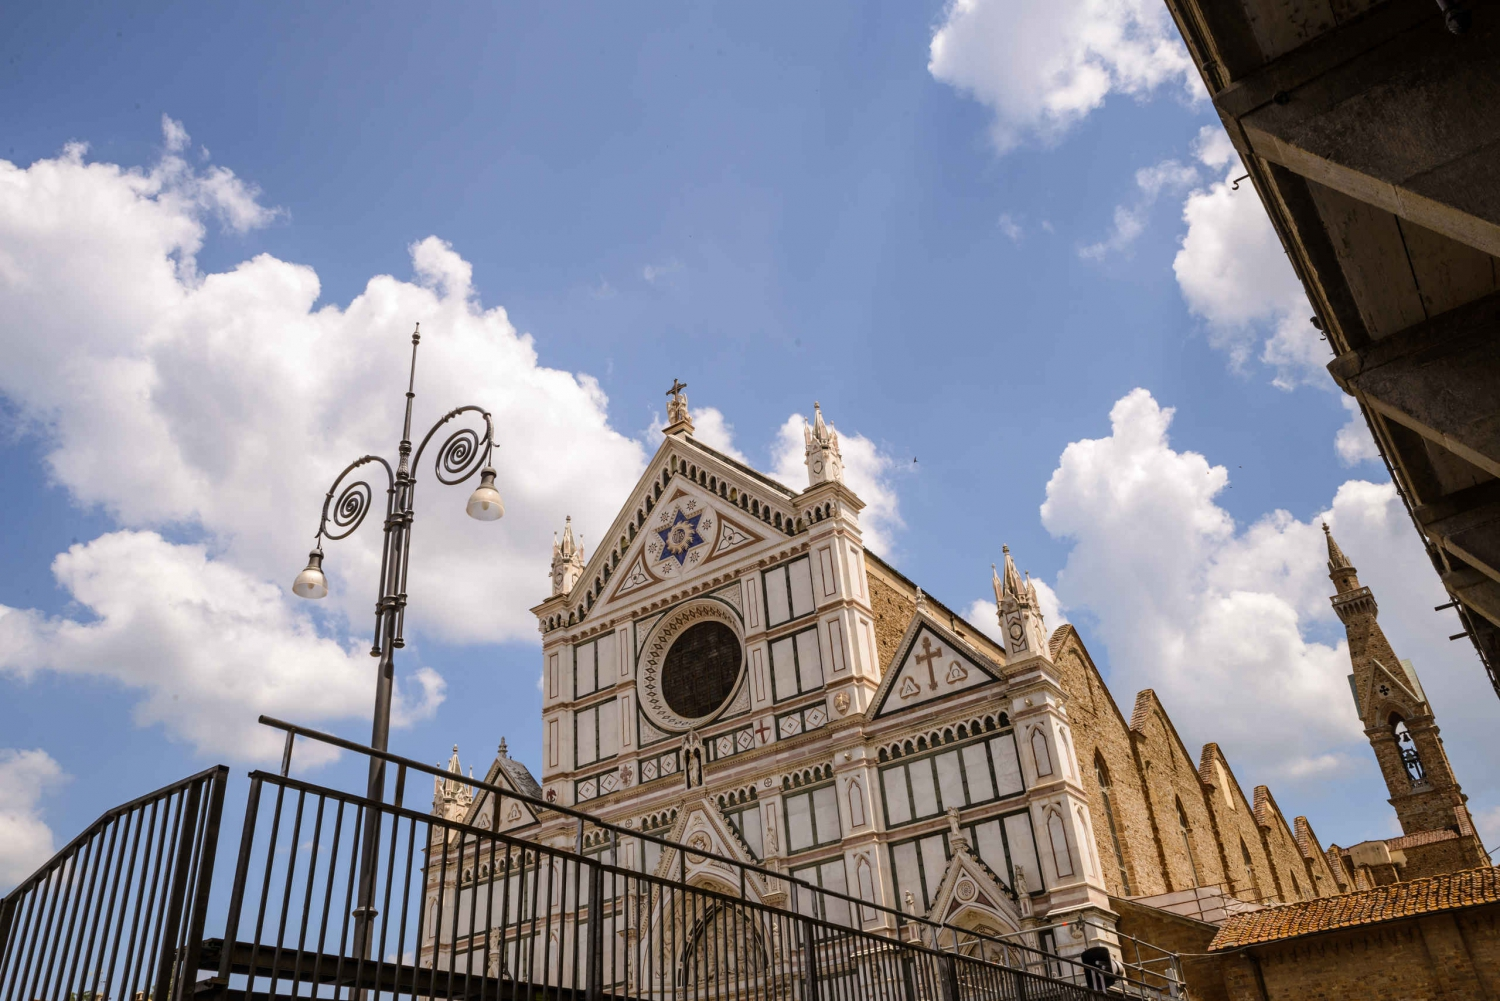 Entrance and Guided Tour of Santa Croce